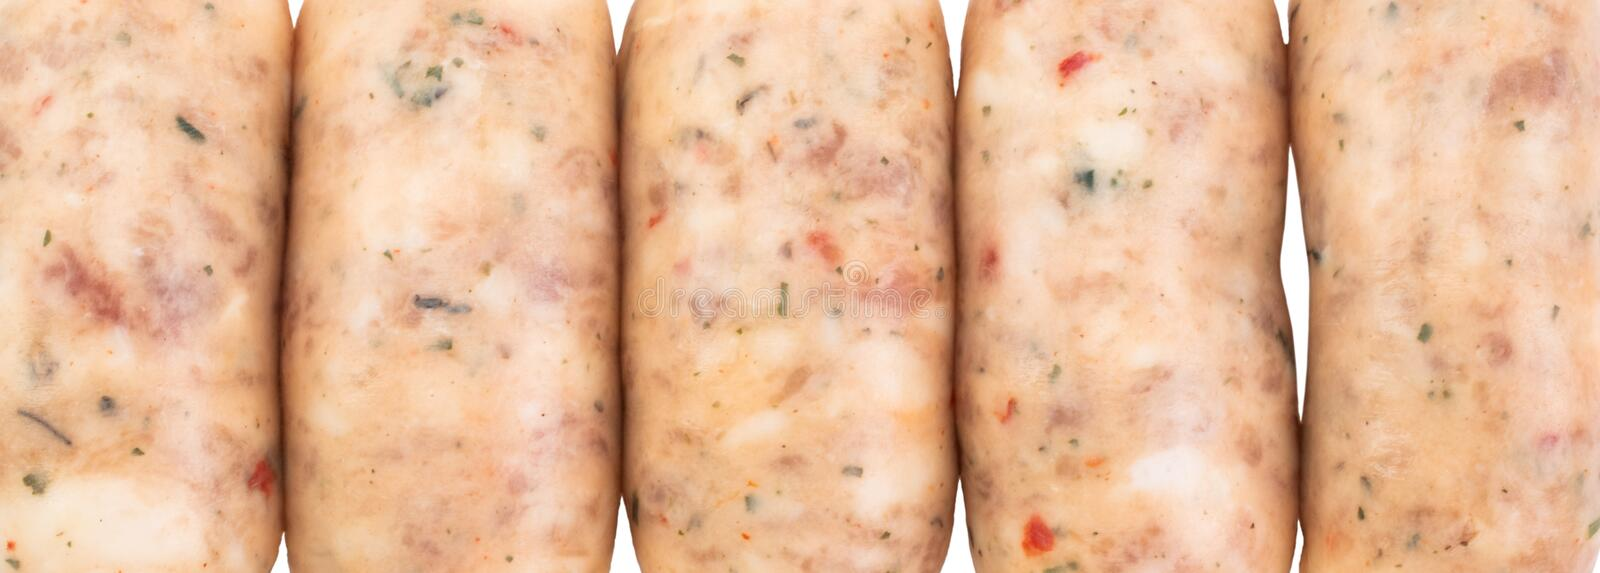 Raw pork sausages isolated on white background with clipping path.  royalty free stock photo